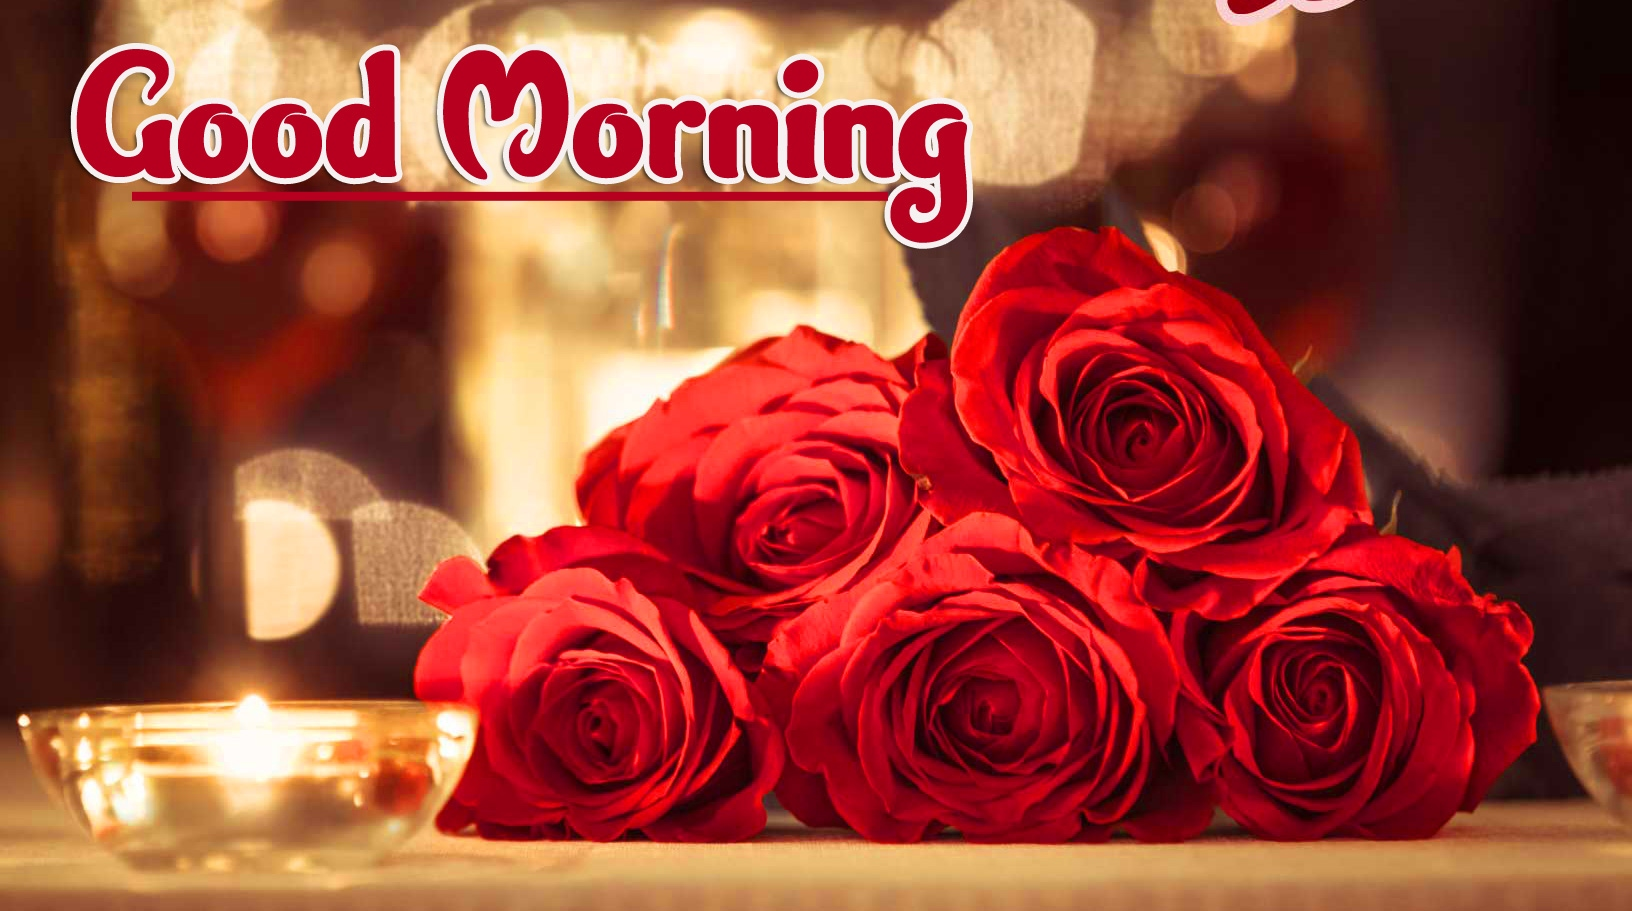 With Red Rose Free Good Morning Wallpaper Pics Download